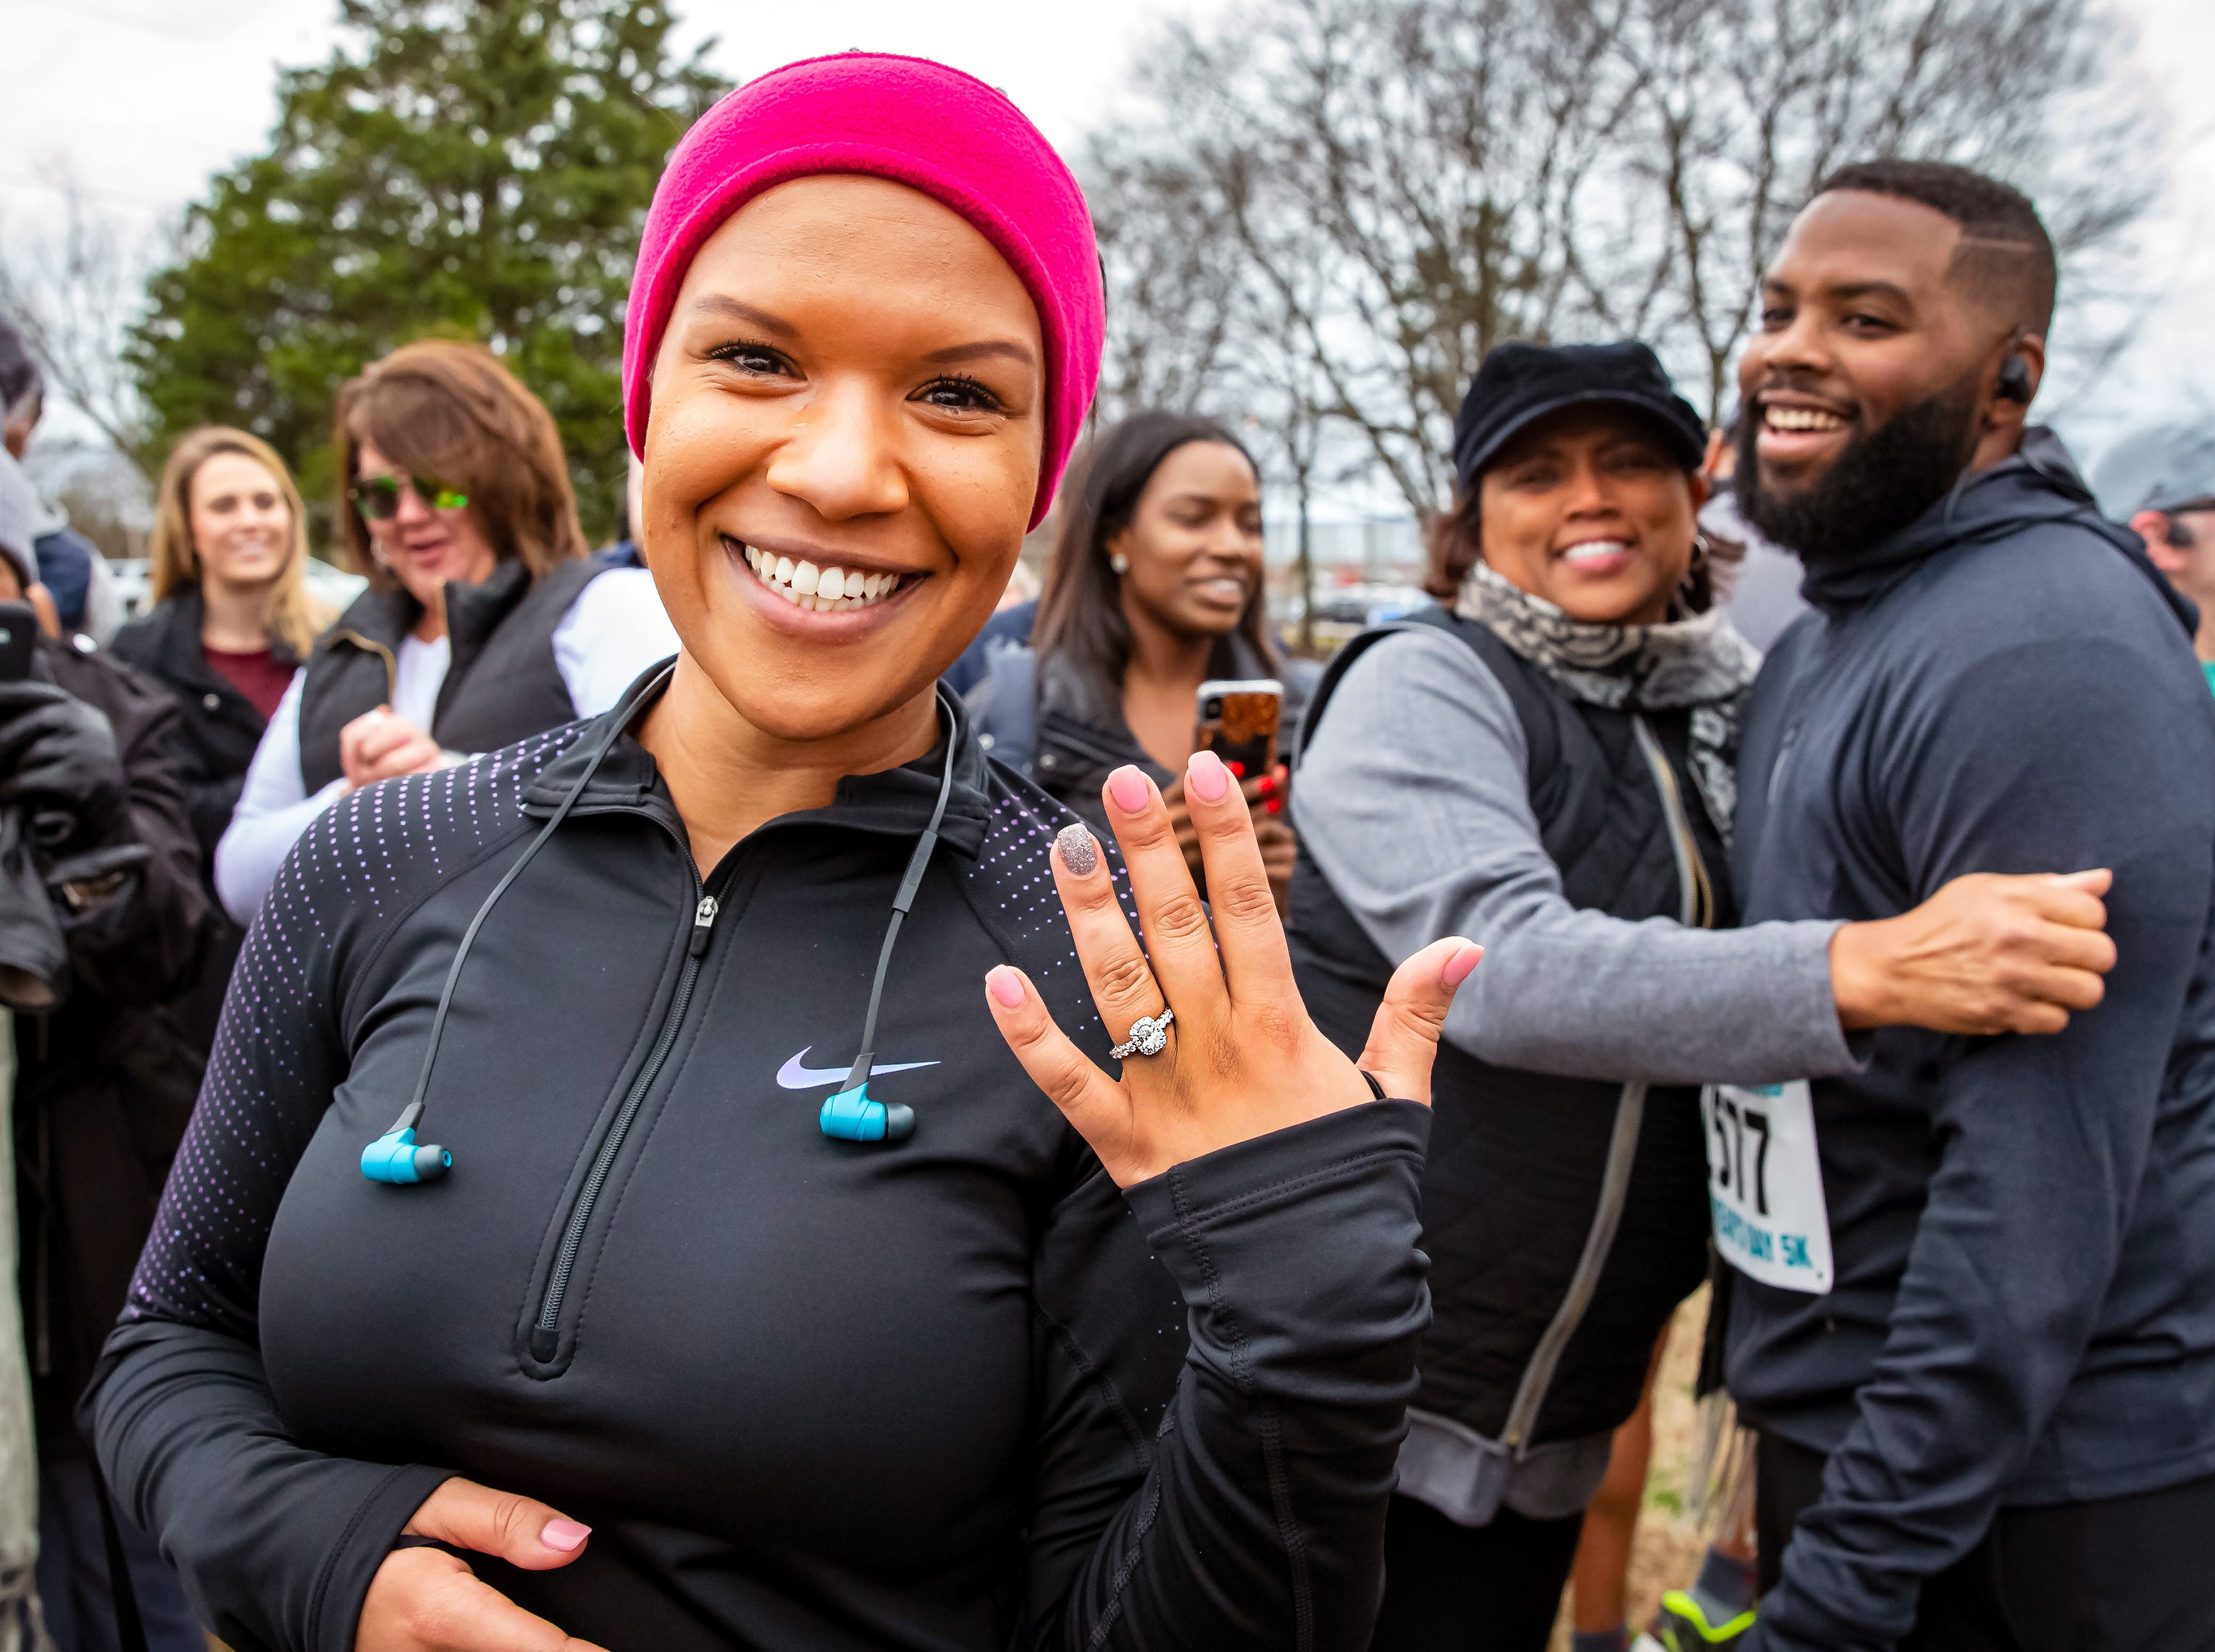 Newly engaged Tiffany Smith shows her new ring as boyfriend Joshua Crutchfield (background) is congratulated by friends. Crutchfield proposed after the couple finished the New Year's Day 5K event held at Old Fort Park on Jan 1, 2019. photo by Jim Davis/M'Boro Parks & Rec.